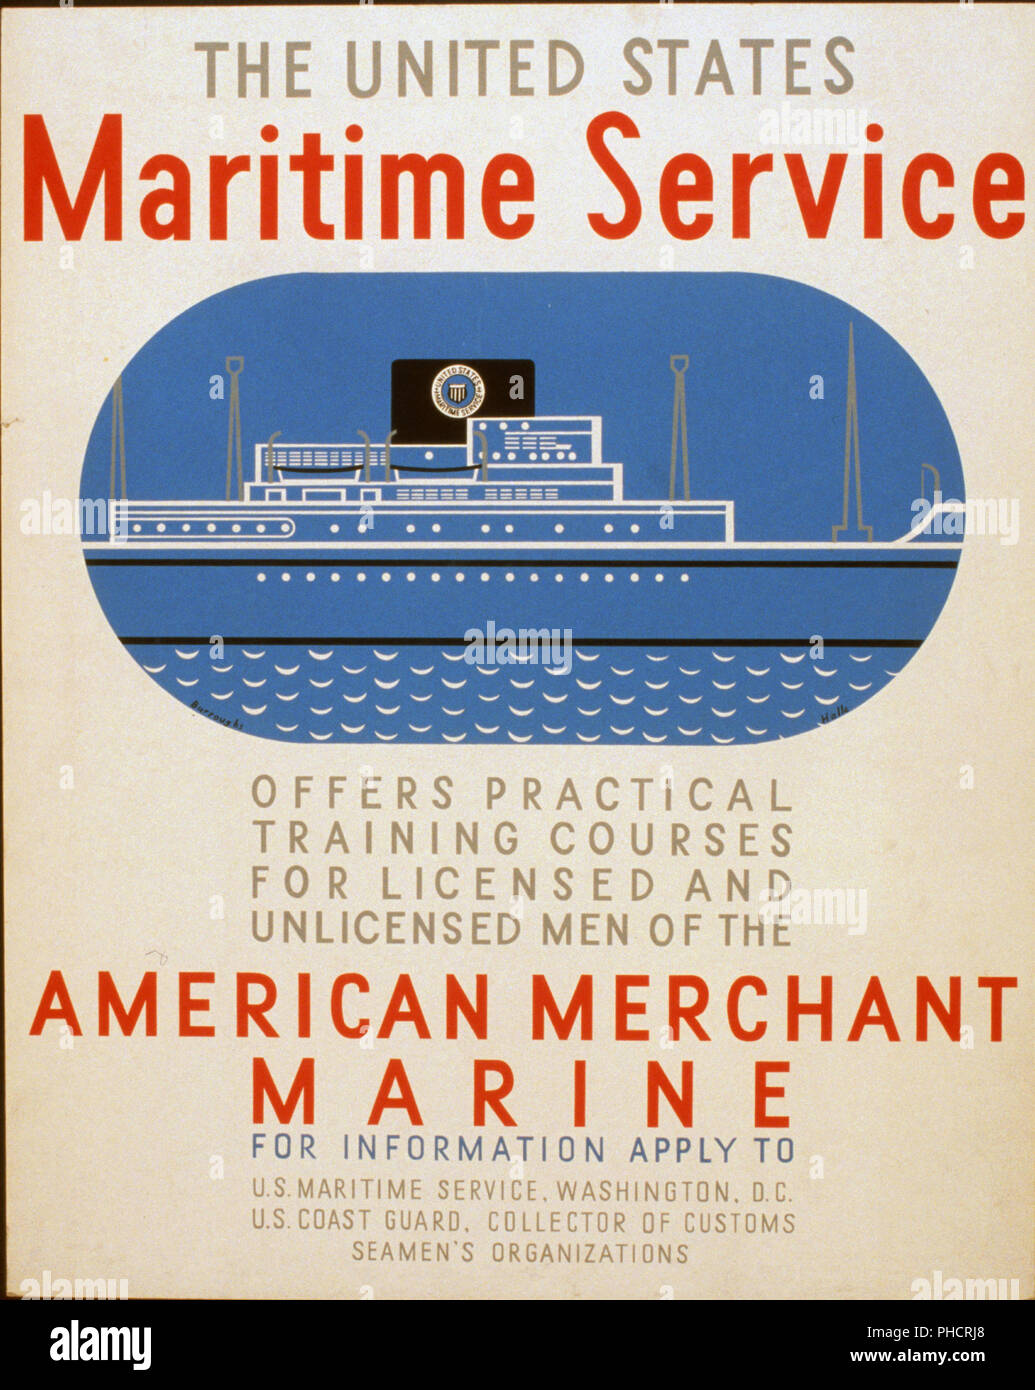 Poster for the United States Maritime Service offering